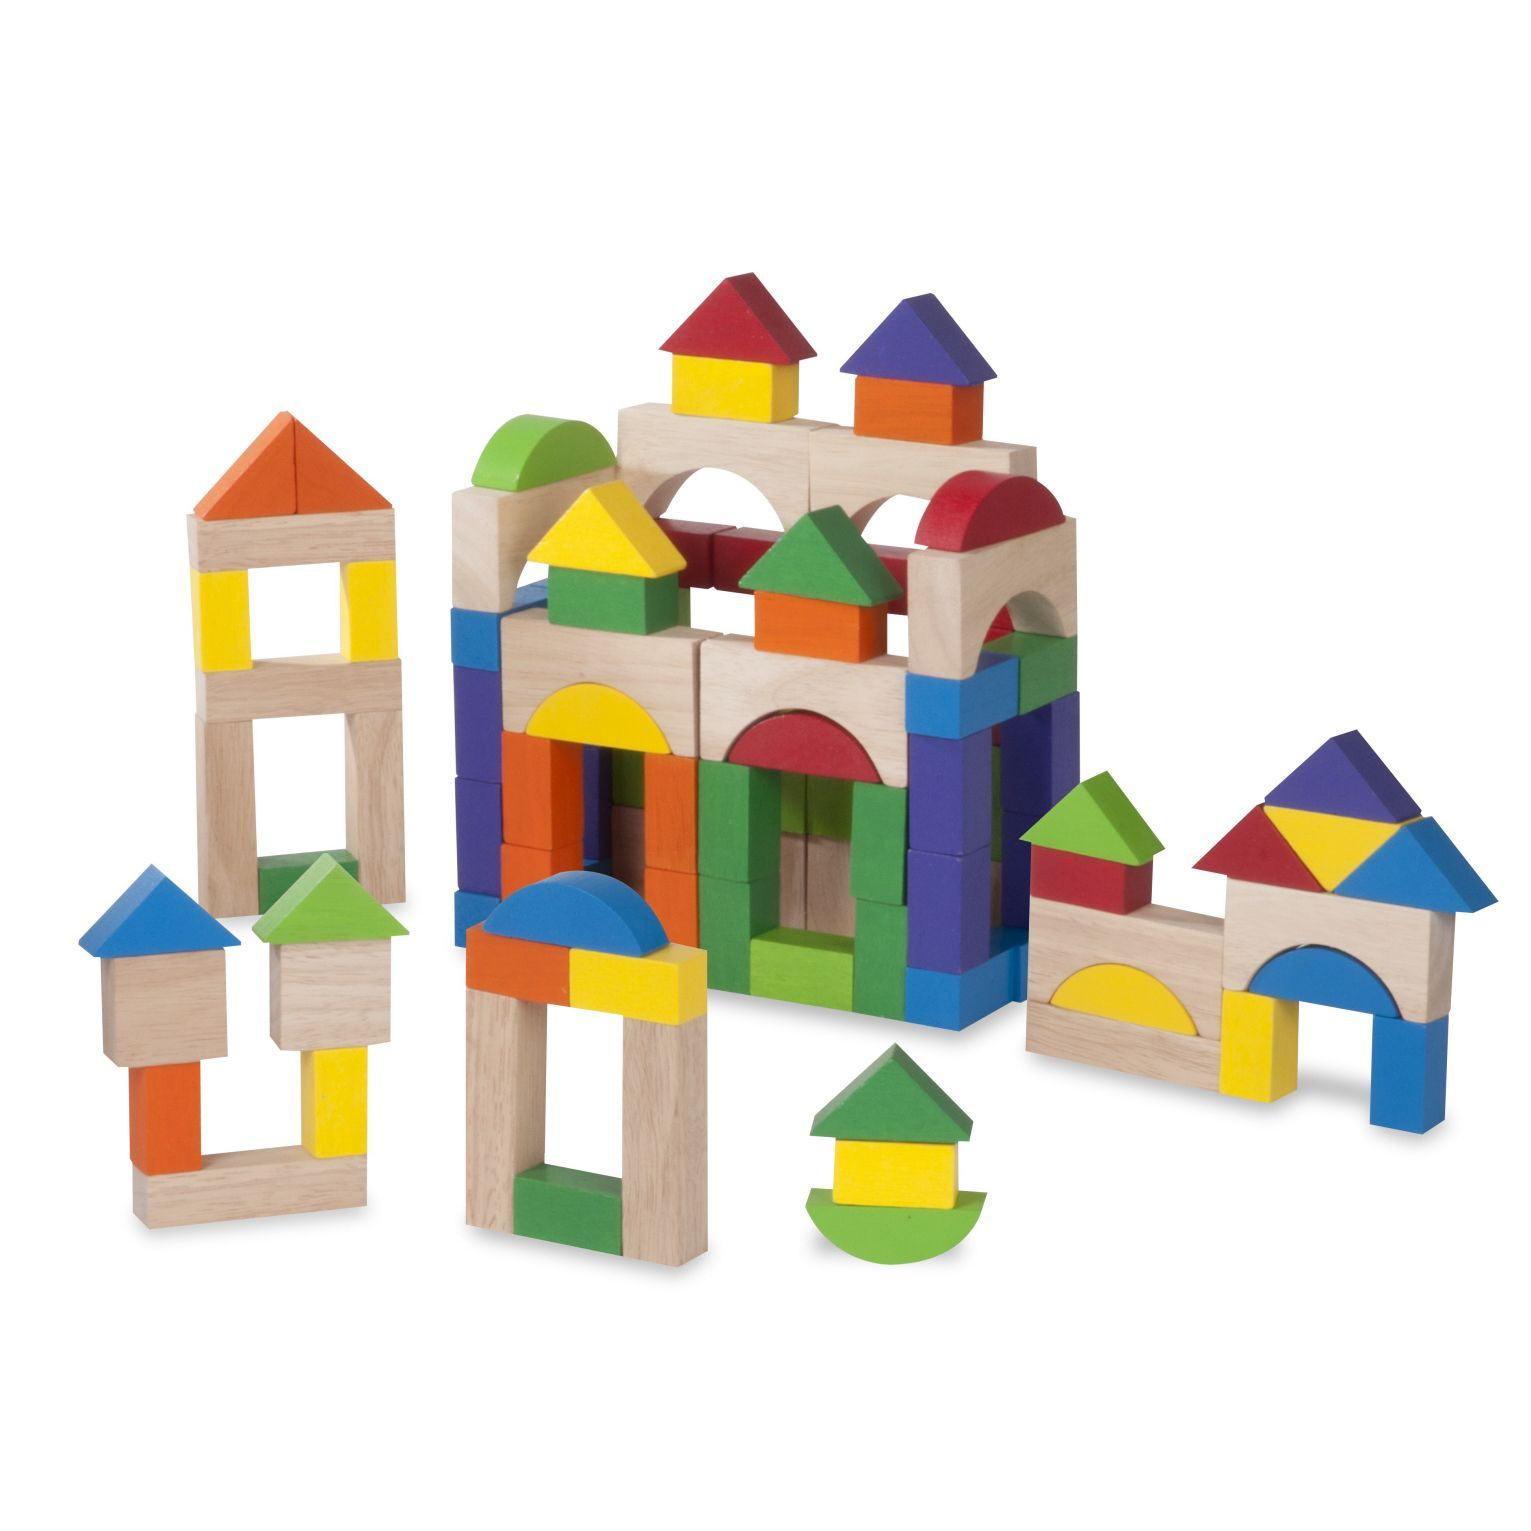 The Wonderworld 100 piece wooden blocks set es with blocks in